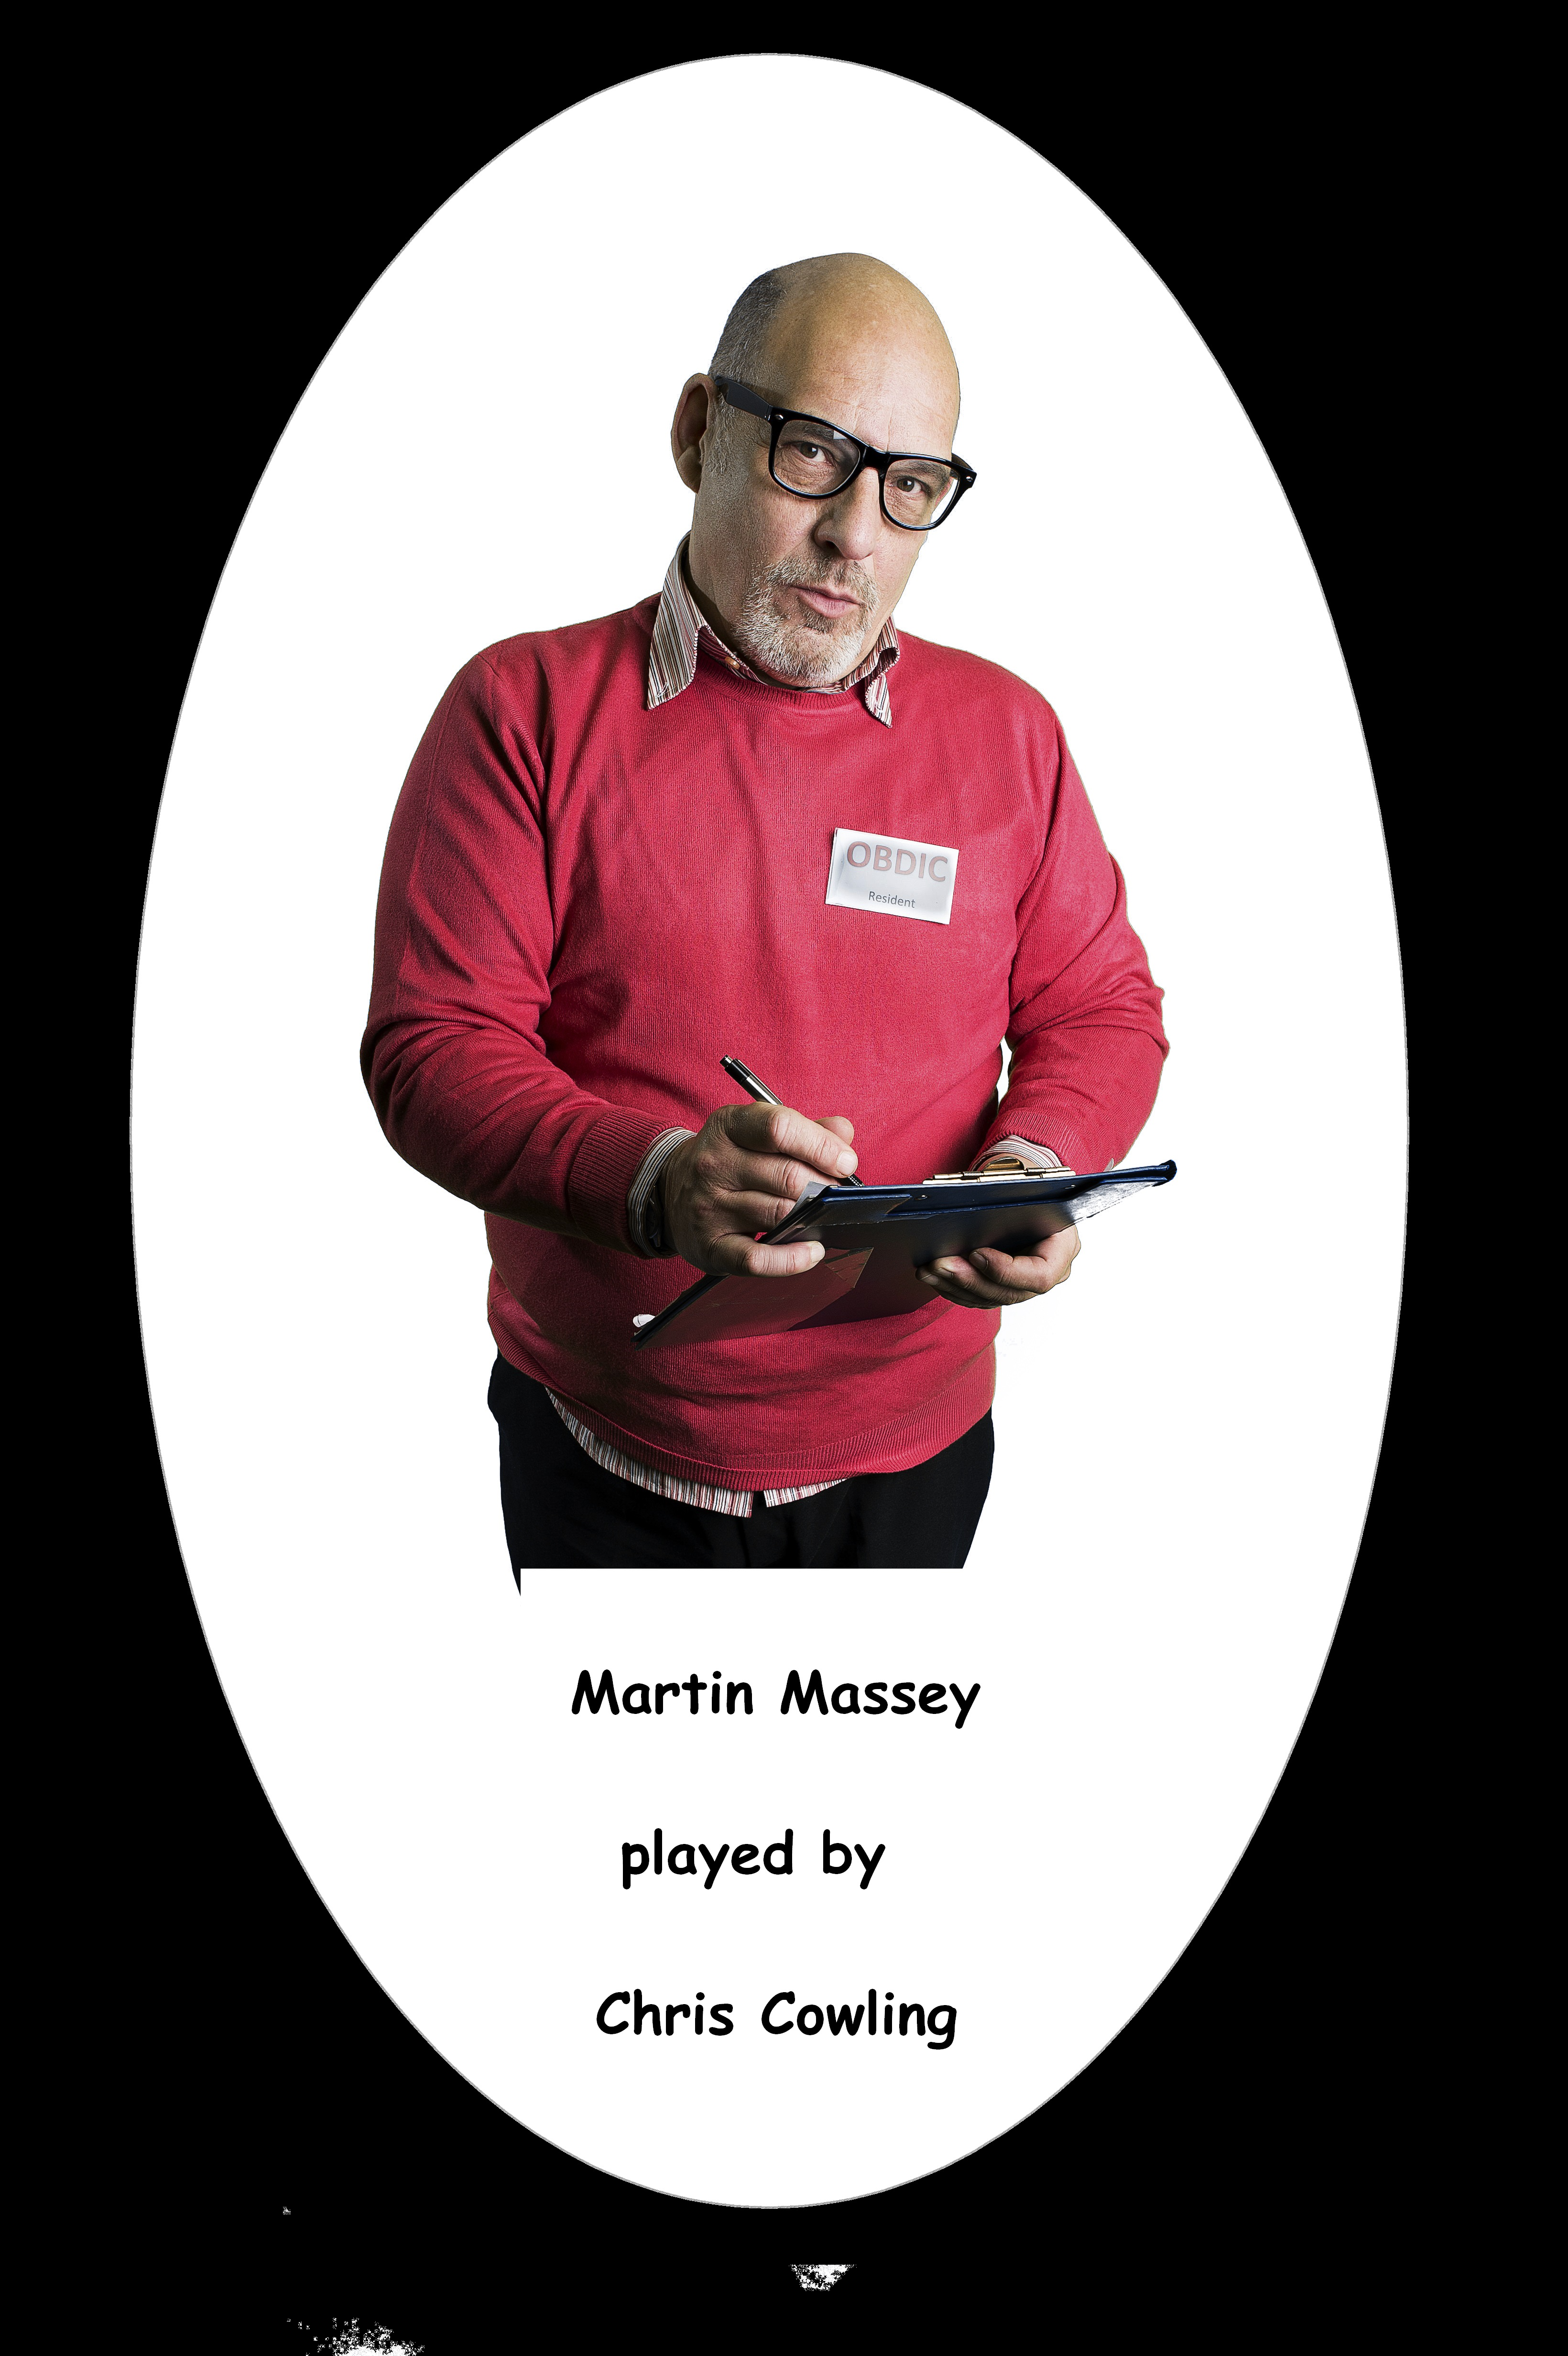 Martin Massey. Mild mannered Martin - the most unlikely of heroes - proves to be the champion of the oppressed!